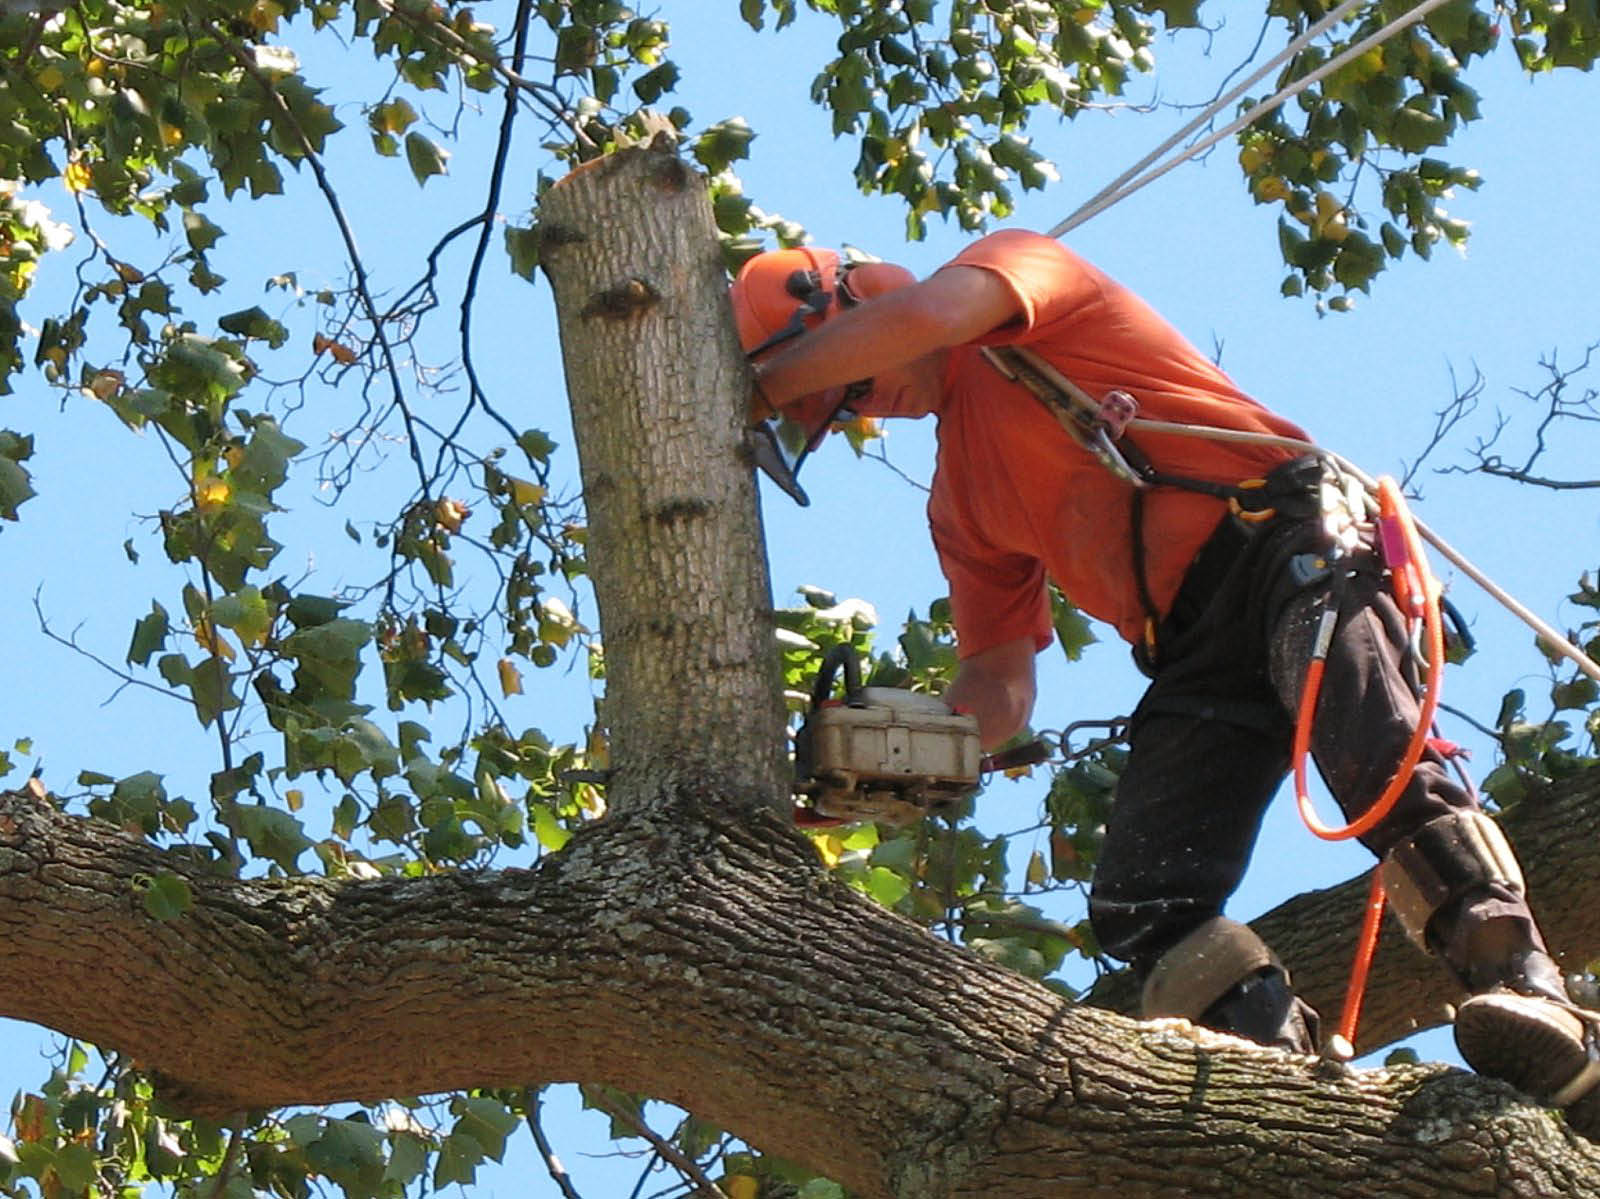 Tree limb removal and haul away services from F.M. Tree Services, Houston